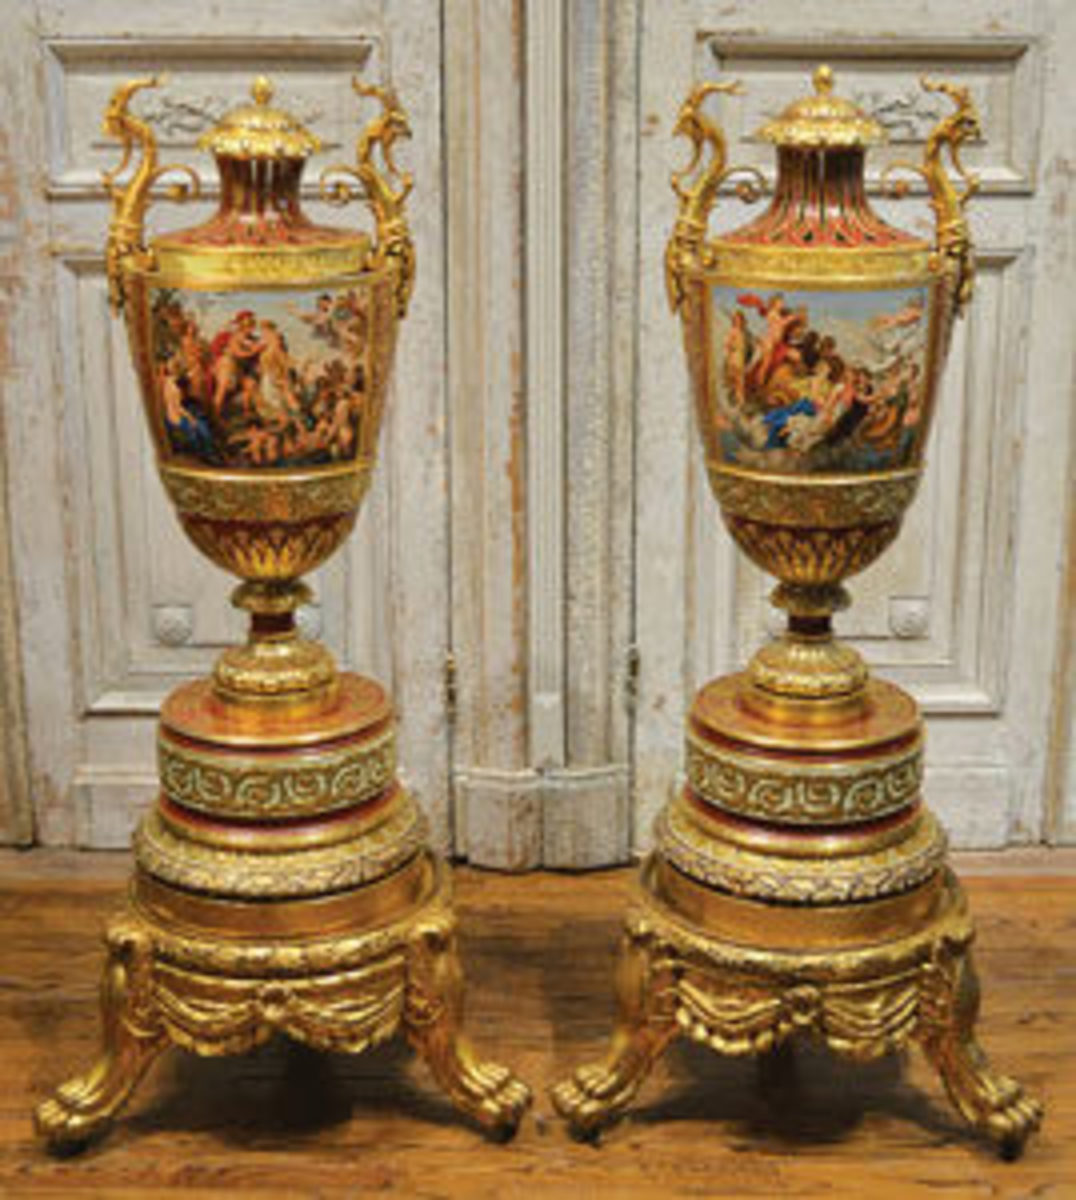 Pair of circa 1890 Royal Vienna urns, monumental in size at 57 inches tall each (on stands), with each capped urn surmounted by a large antlered gargoyle handles; estimate: $35,000-$45,000.